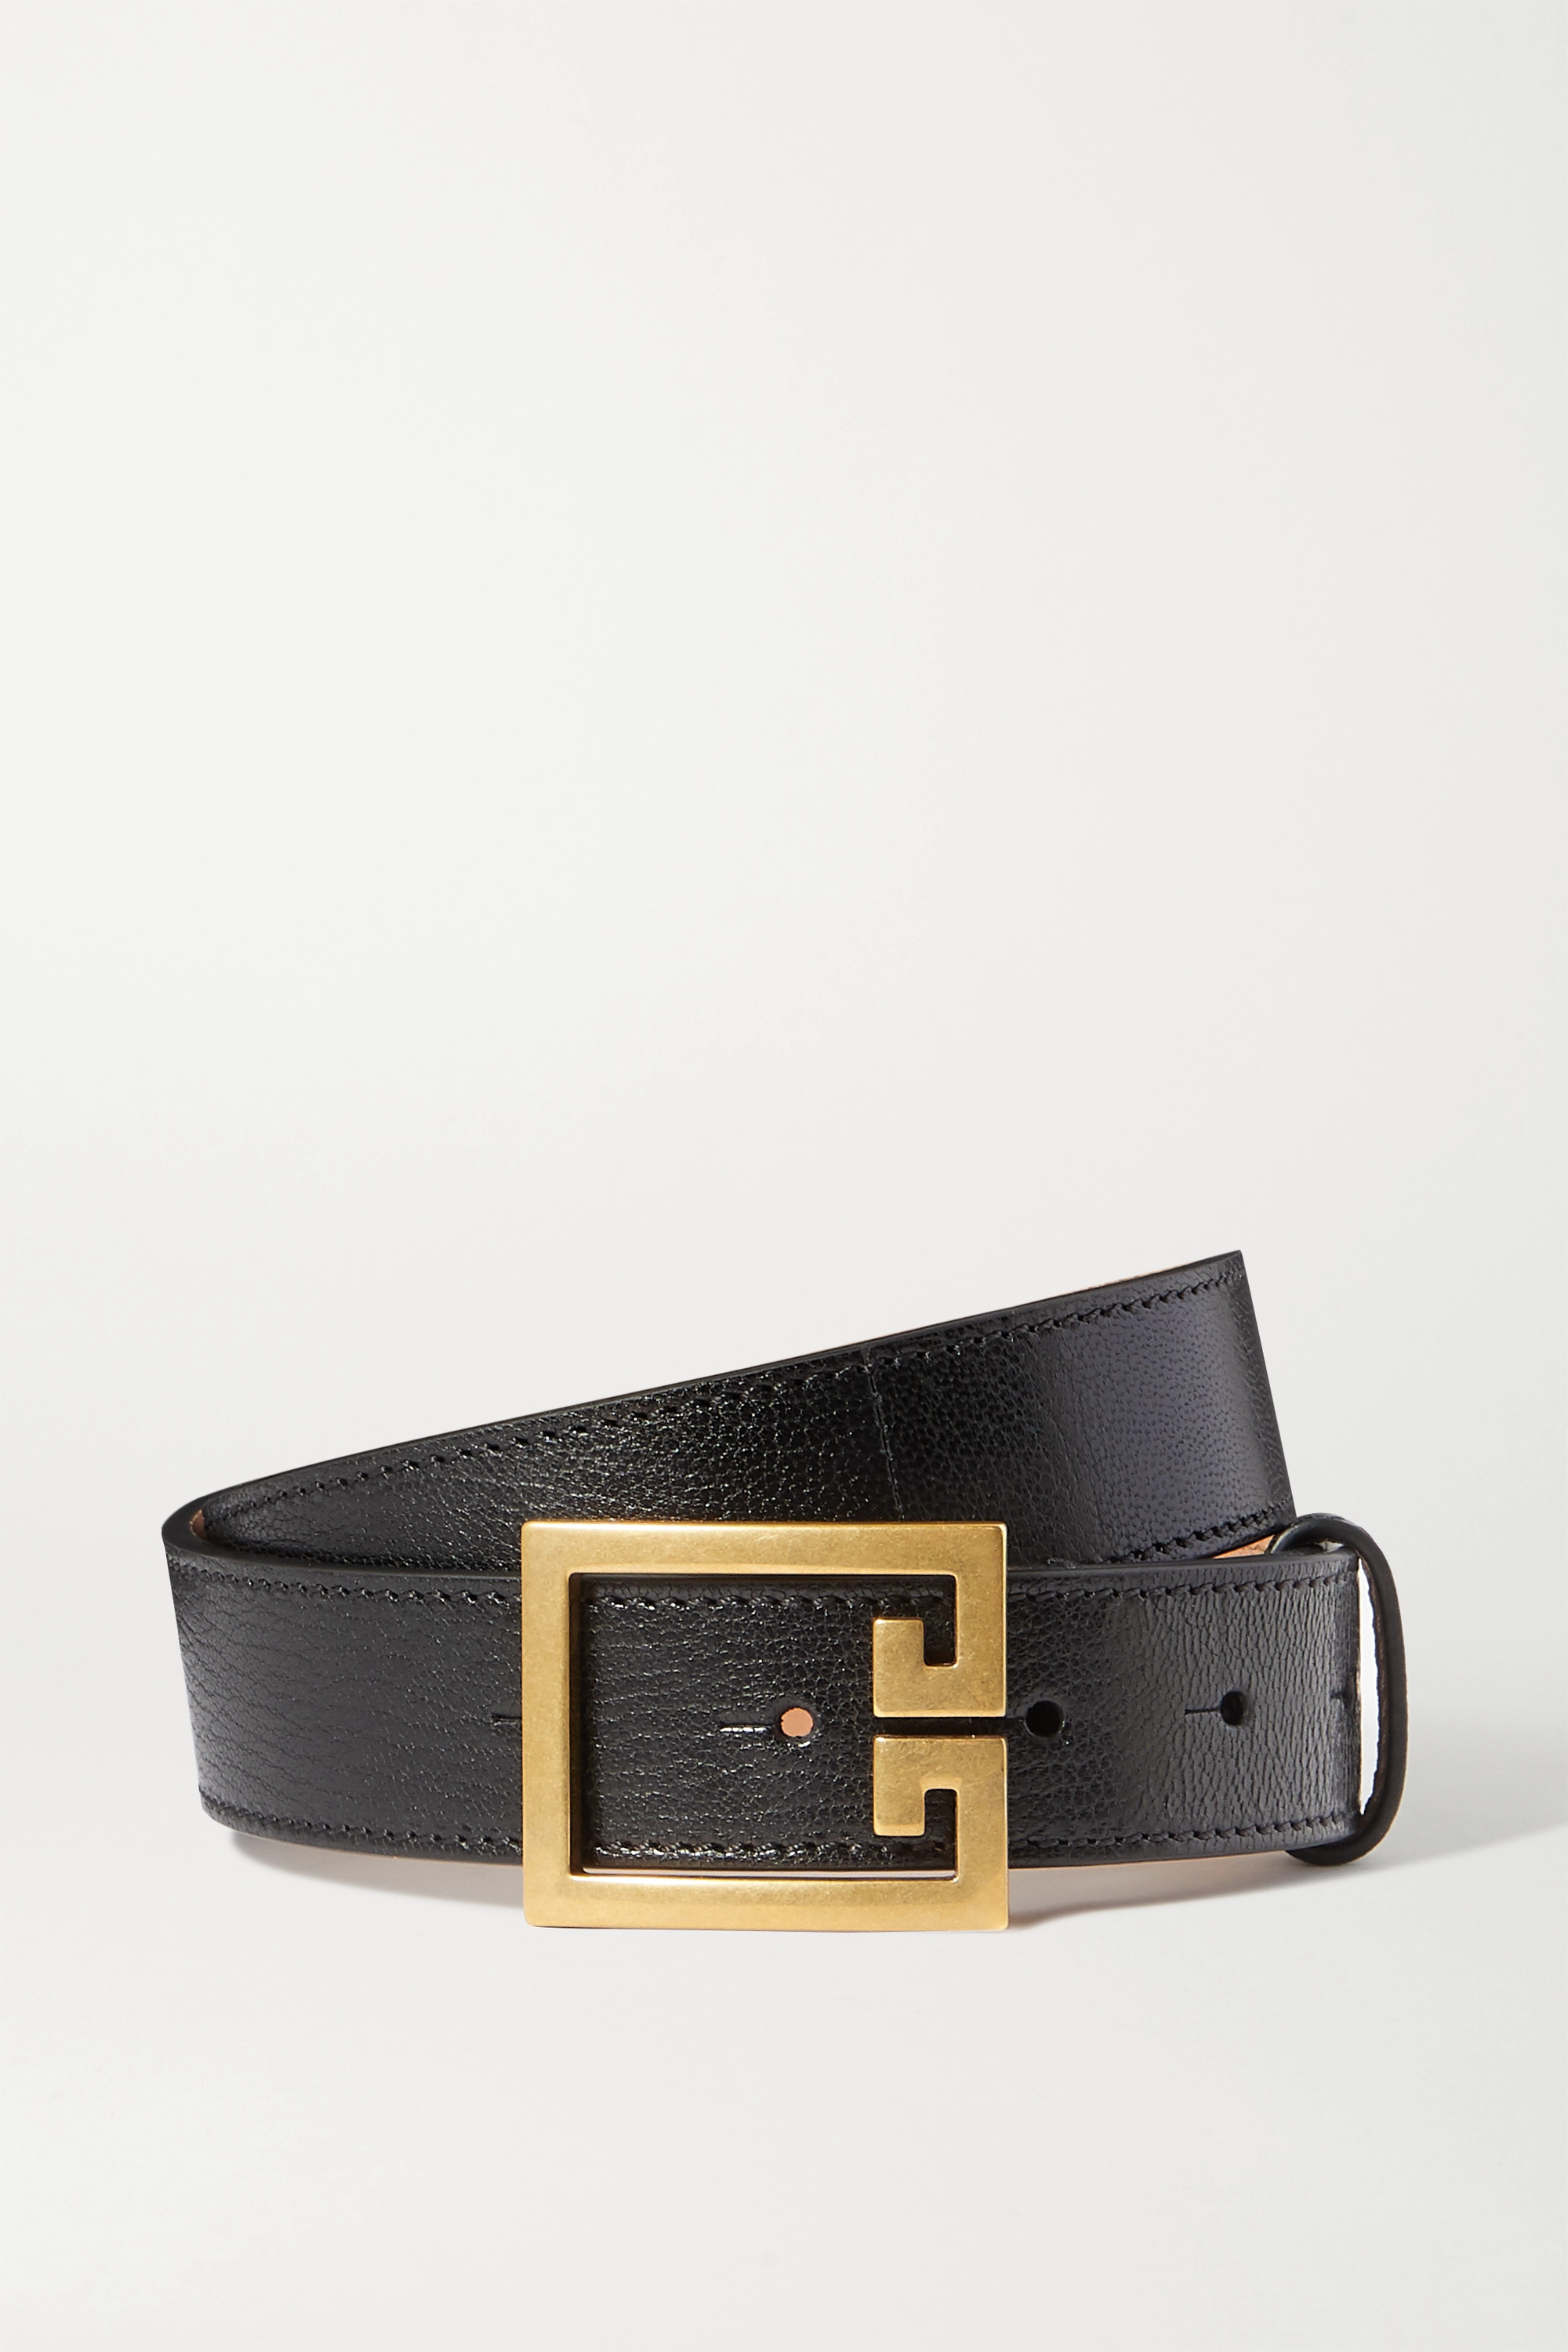 Givenchy Textured-leather belt